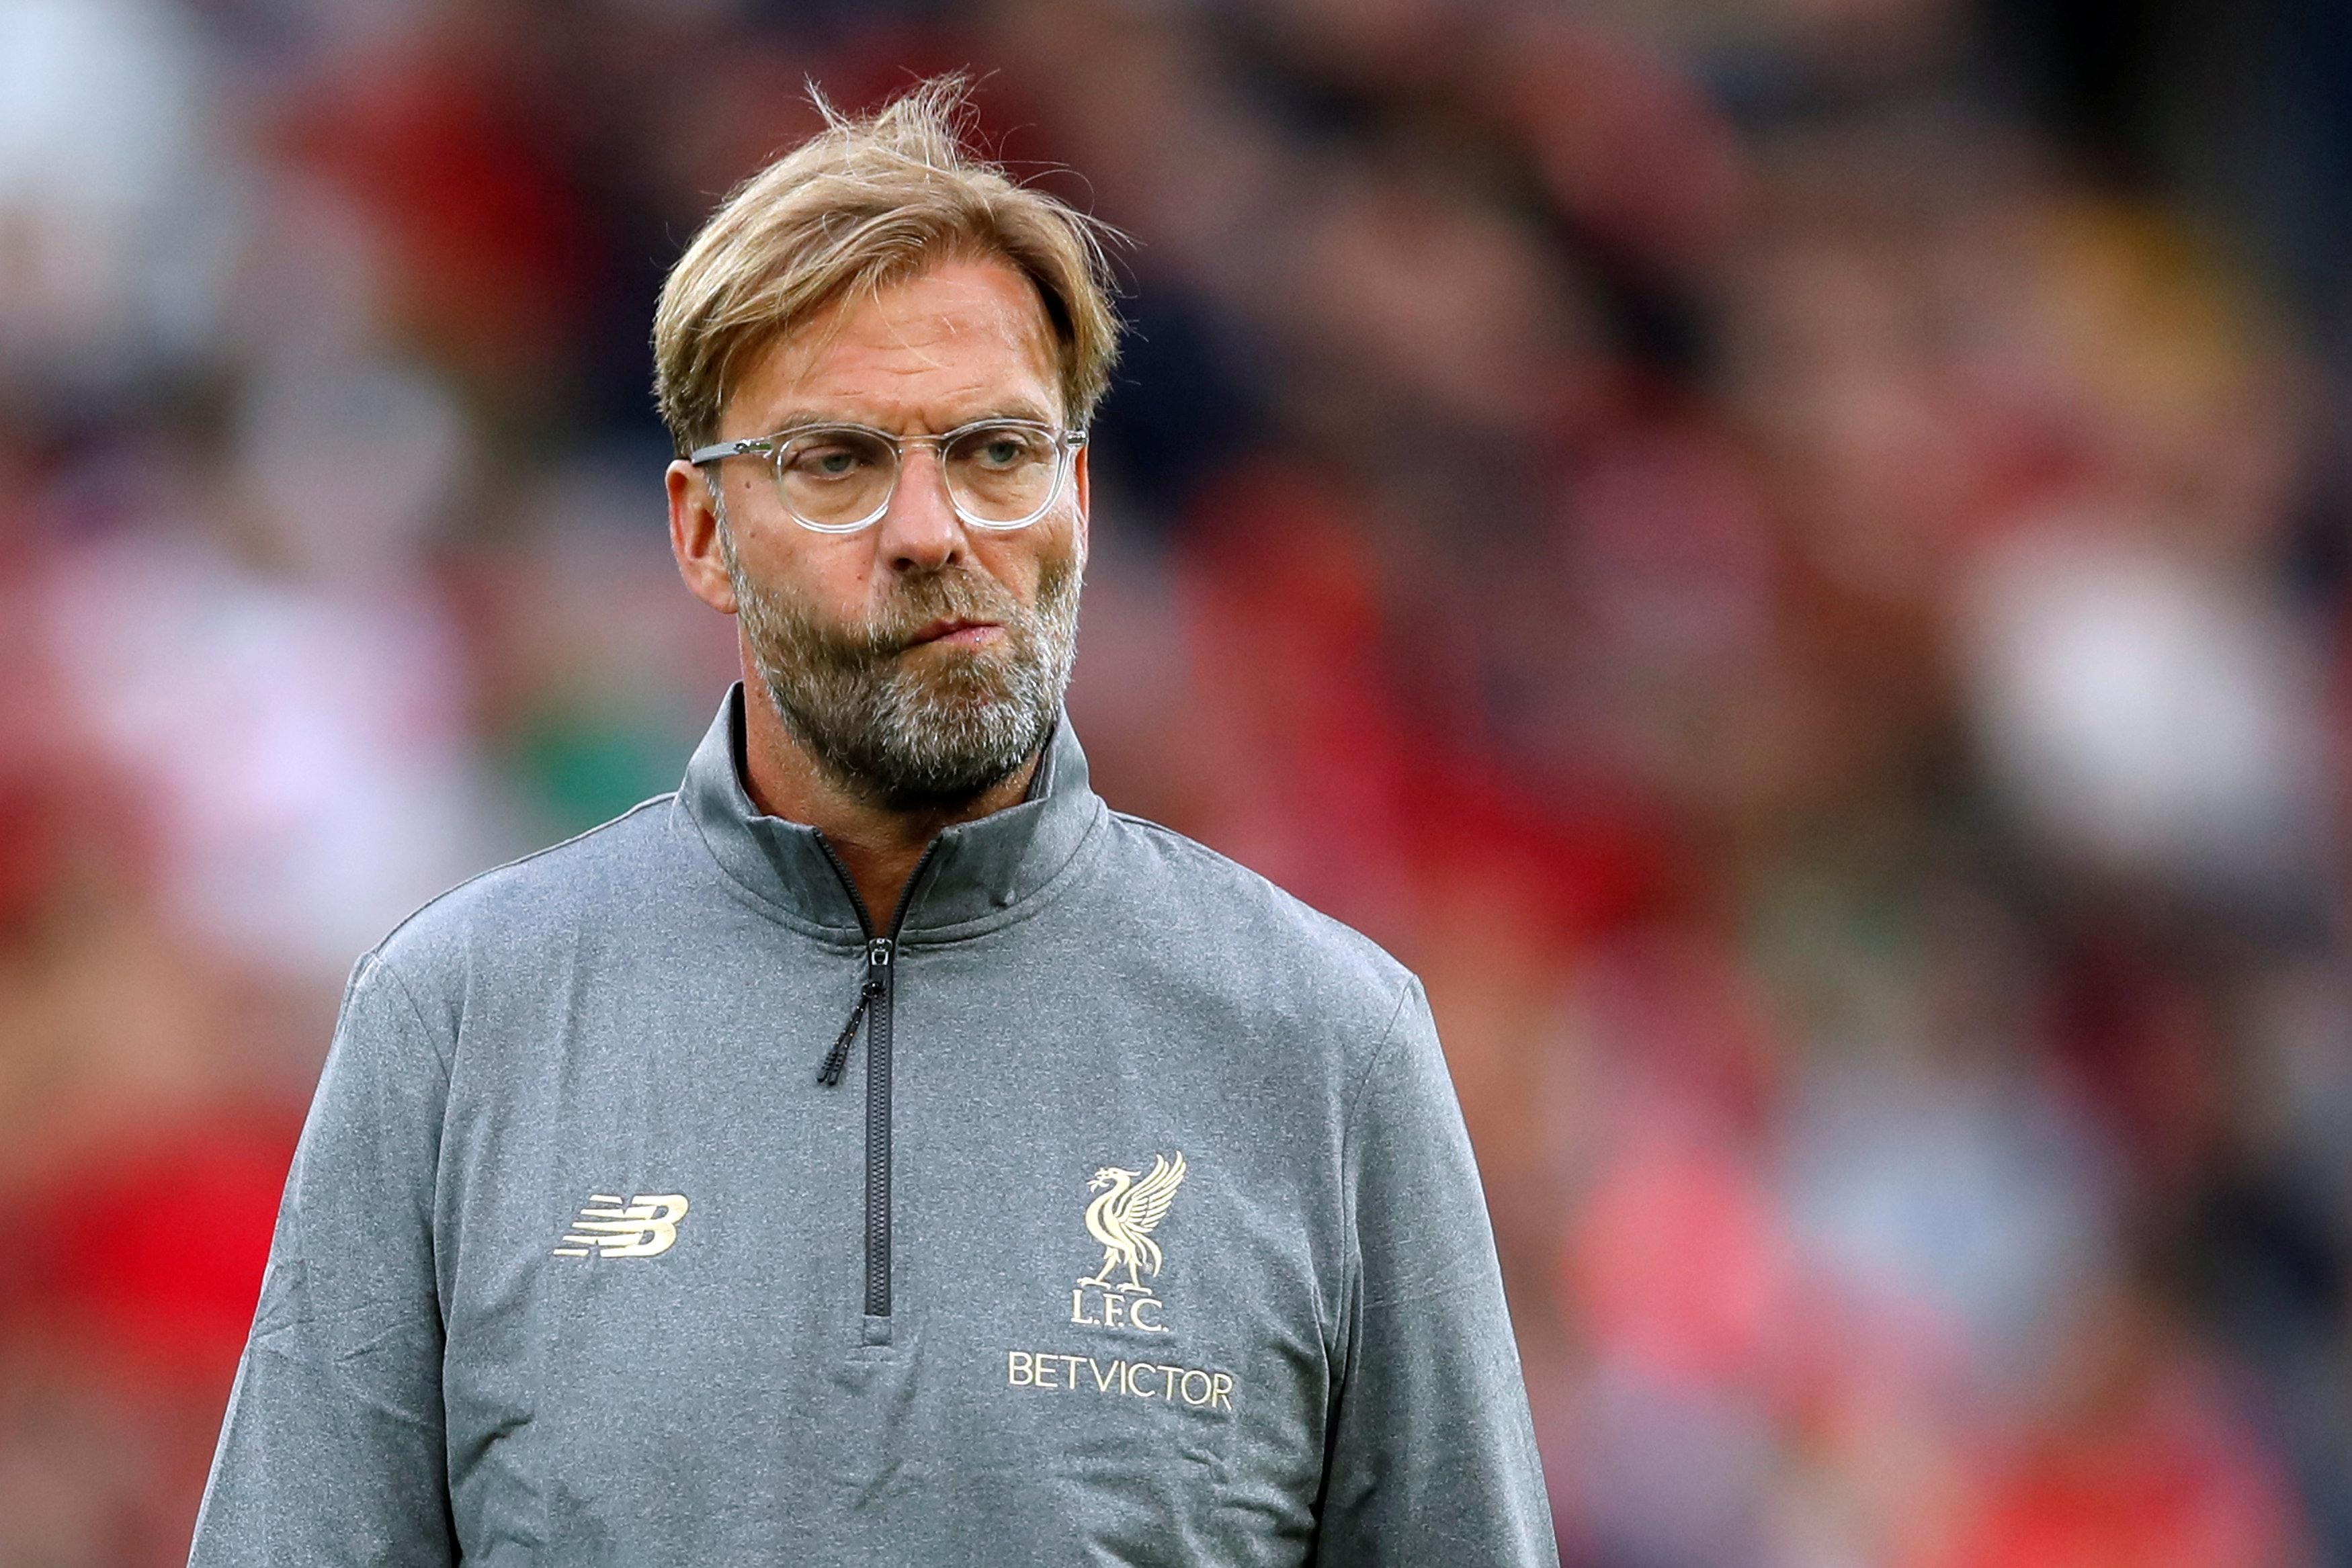 Jurgen Klopp has insisted Liverpool are underdogs this season and they need luck on their side if they are to win their first title since 1990